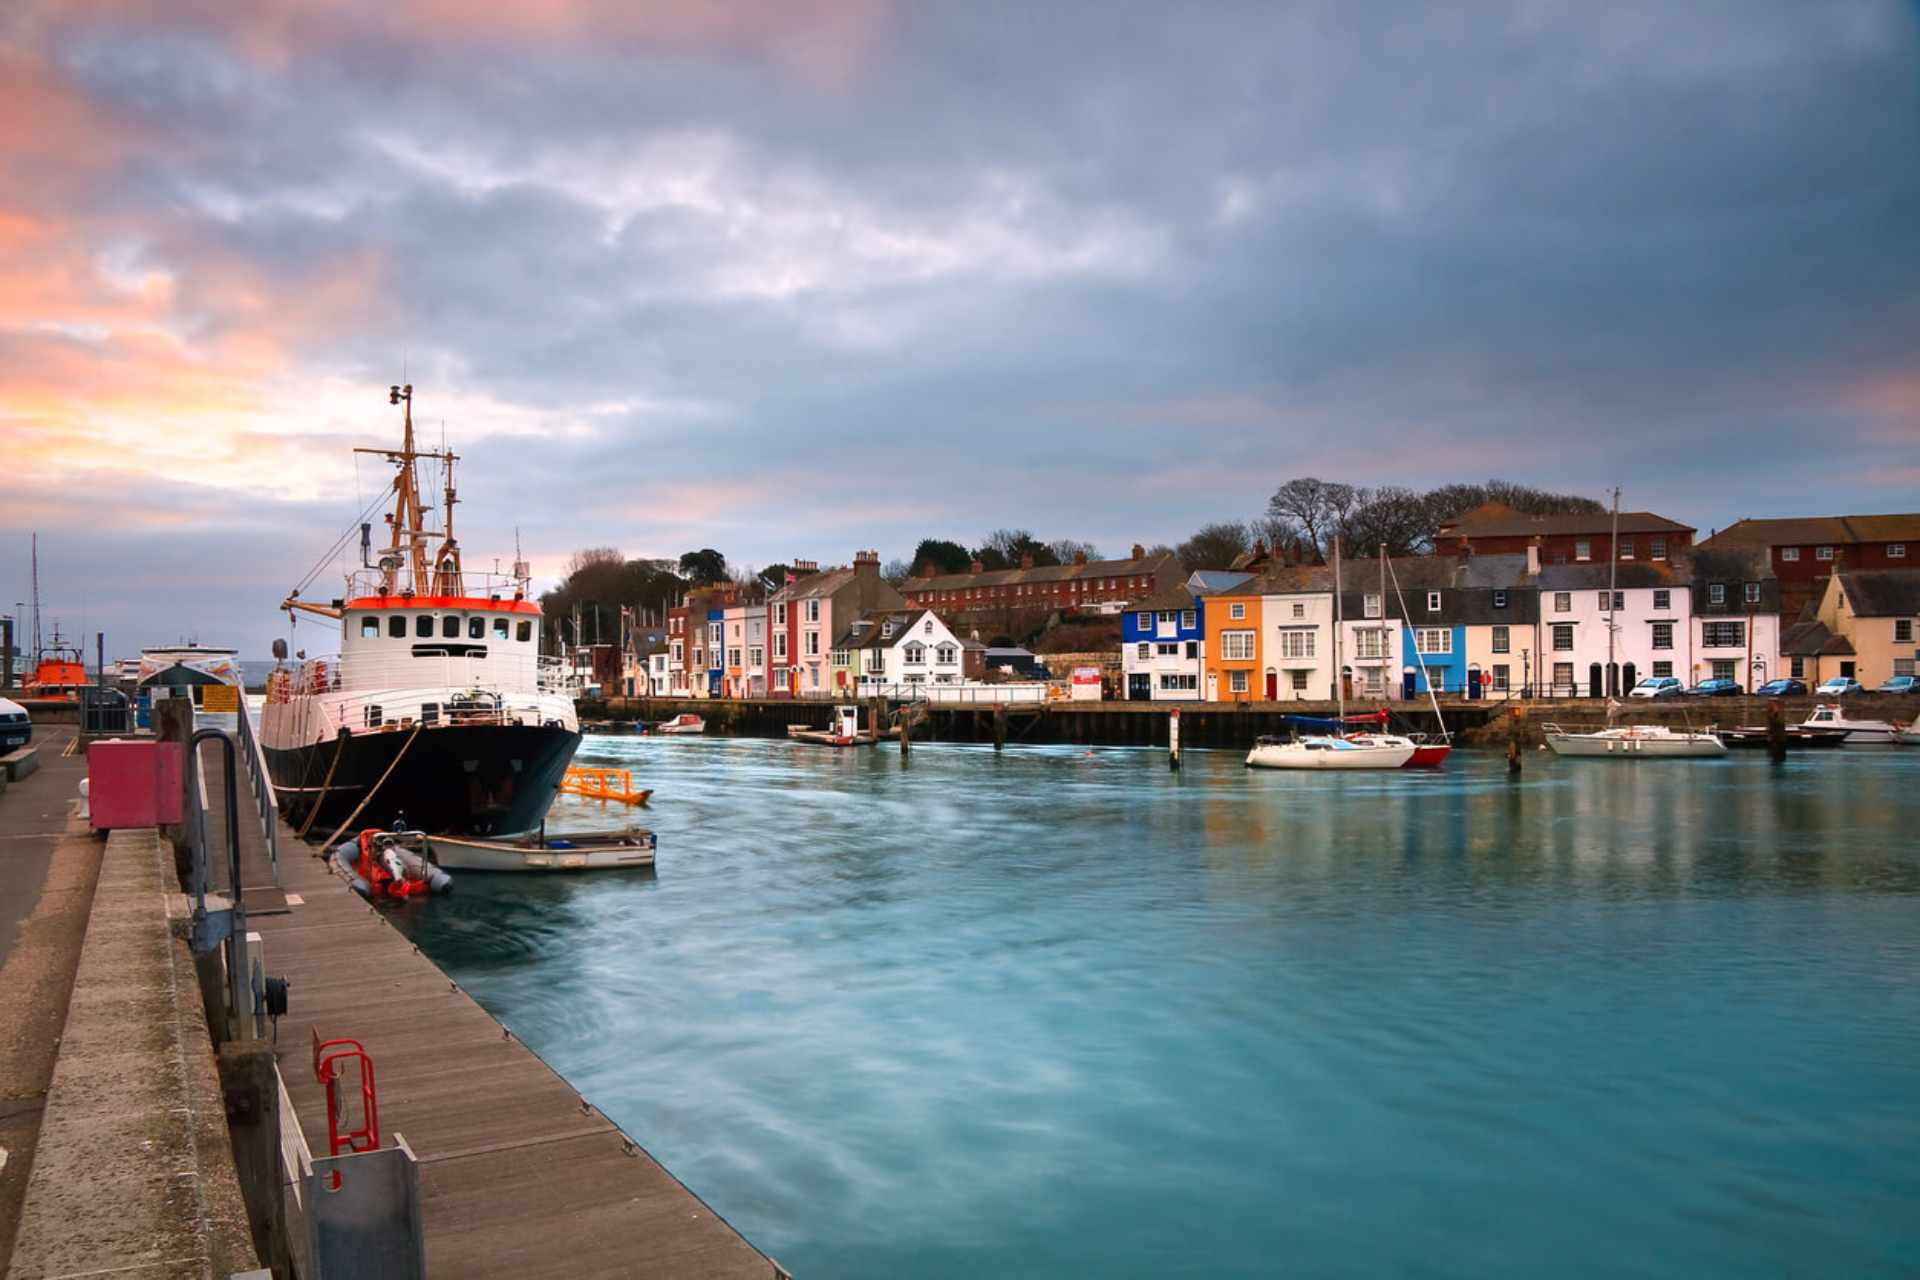 boats-on-deck-at-weymouth-harbour-by-colourful-houses